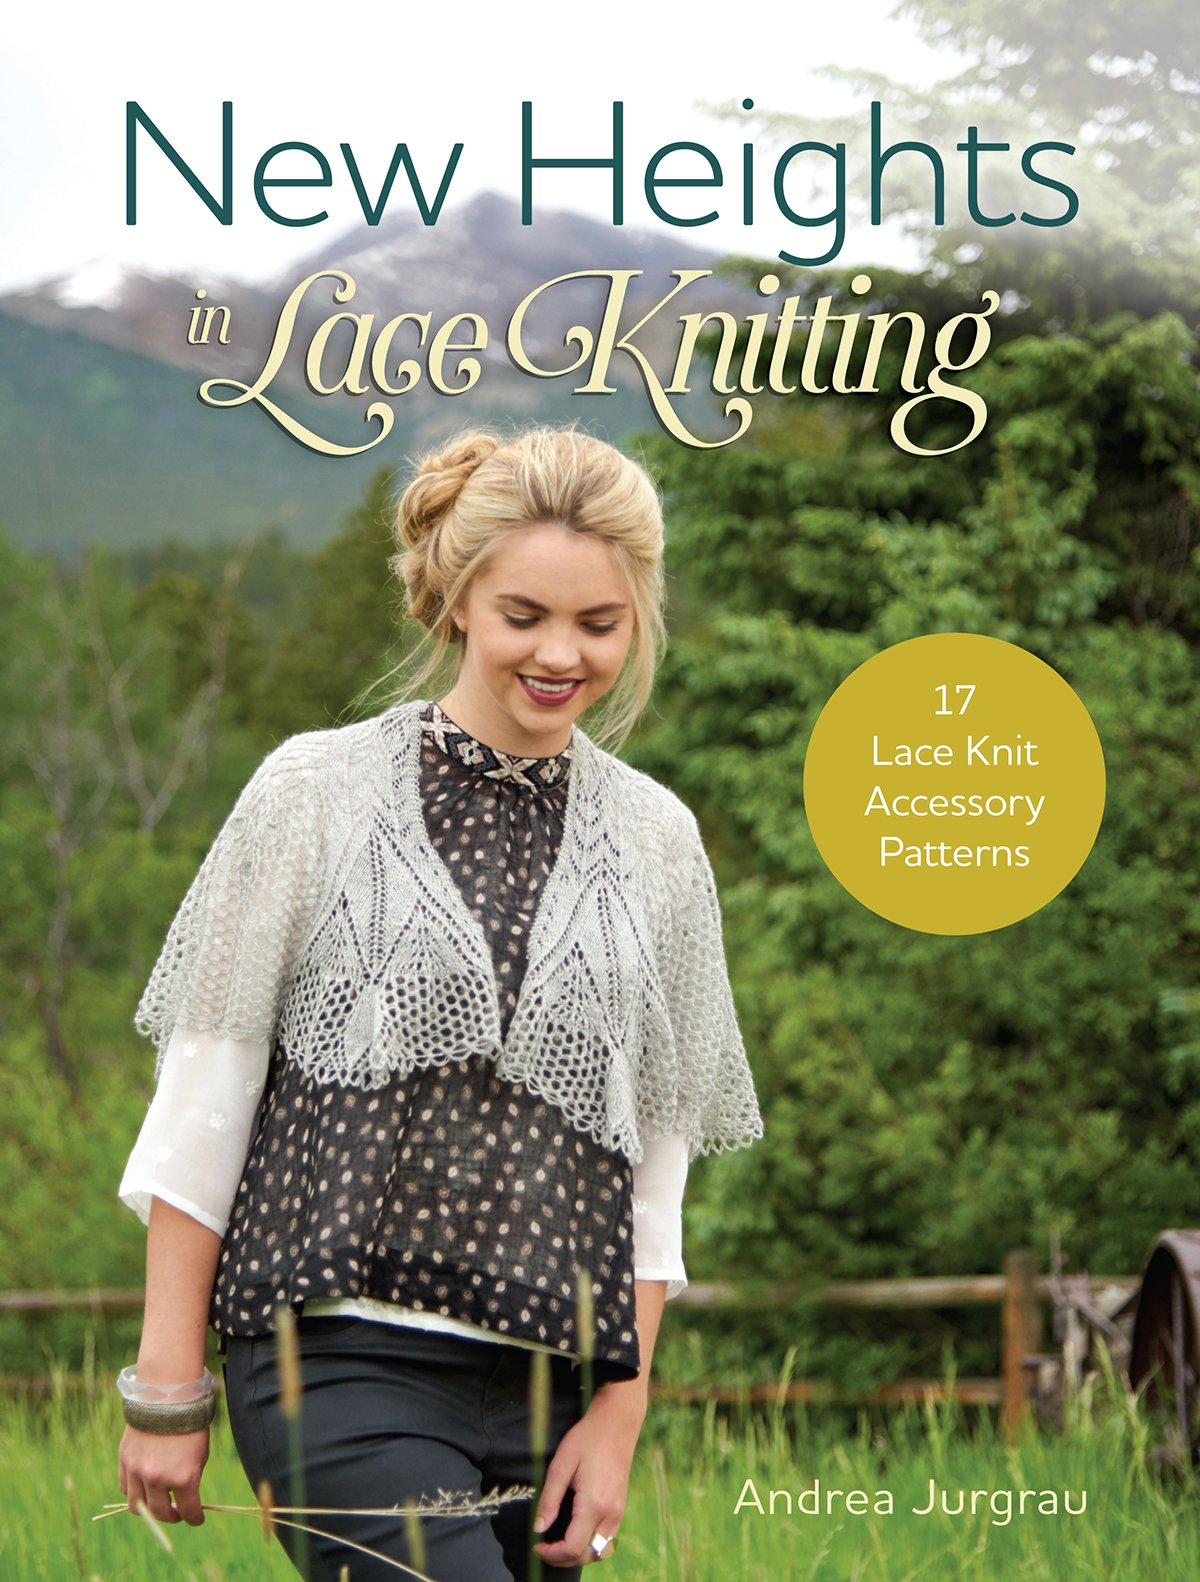 New Heights In Lace Knitting: 17 Lace Knit Accessory Patterns ...